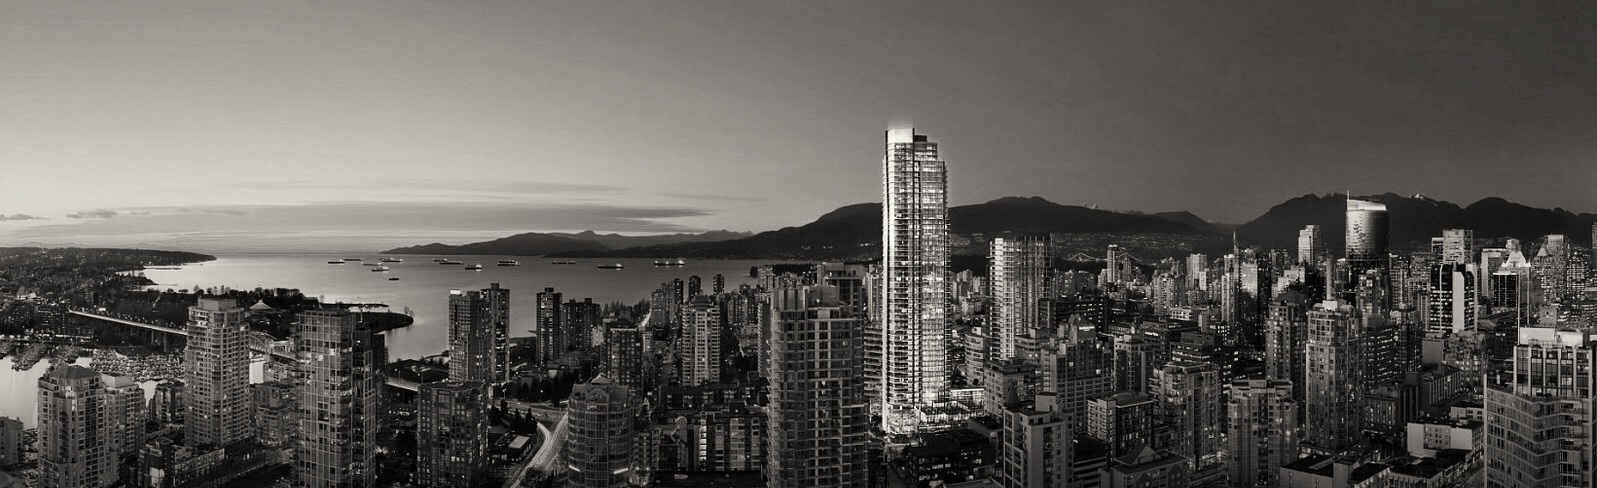 Truly Rare Vancouver Views at 'Burrard Place' 4.jpg